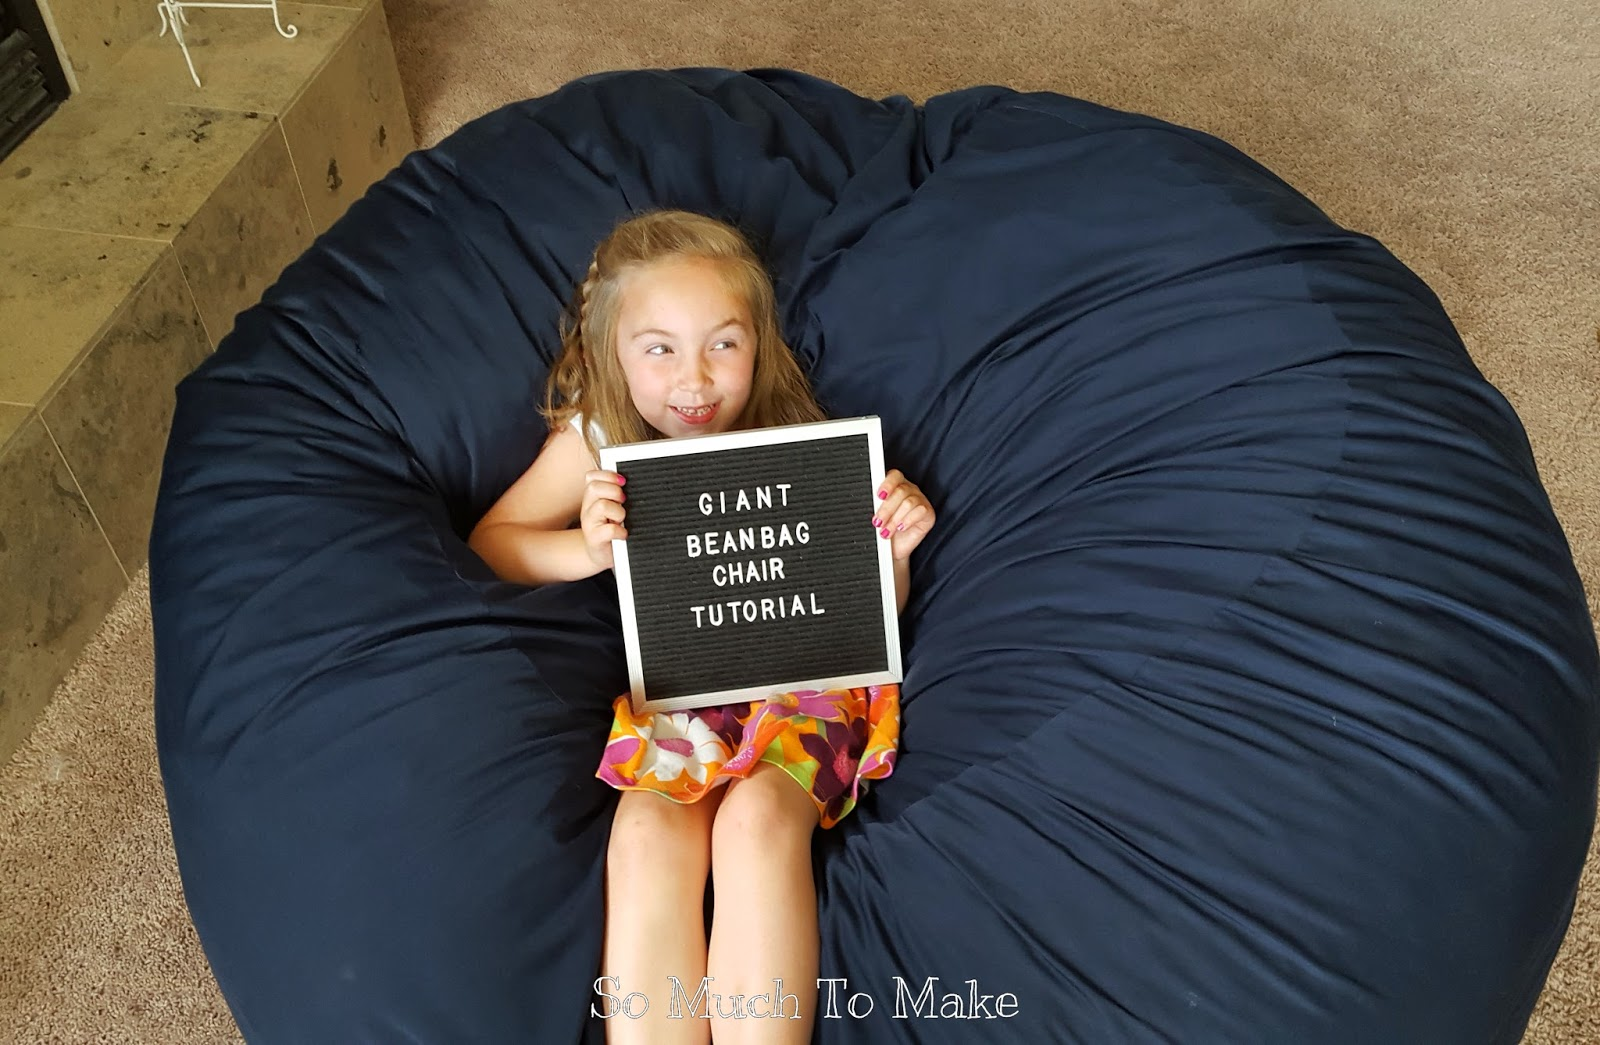 how to make bean bag chair design for debut giant tutorial so much